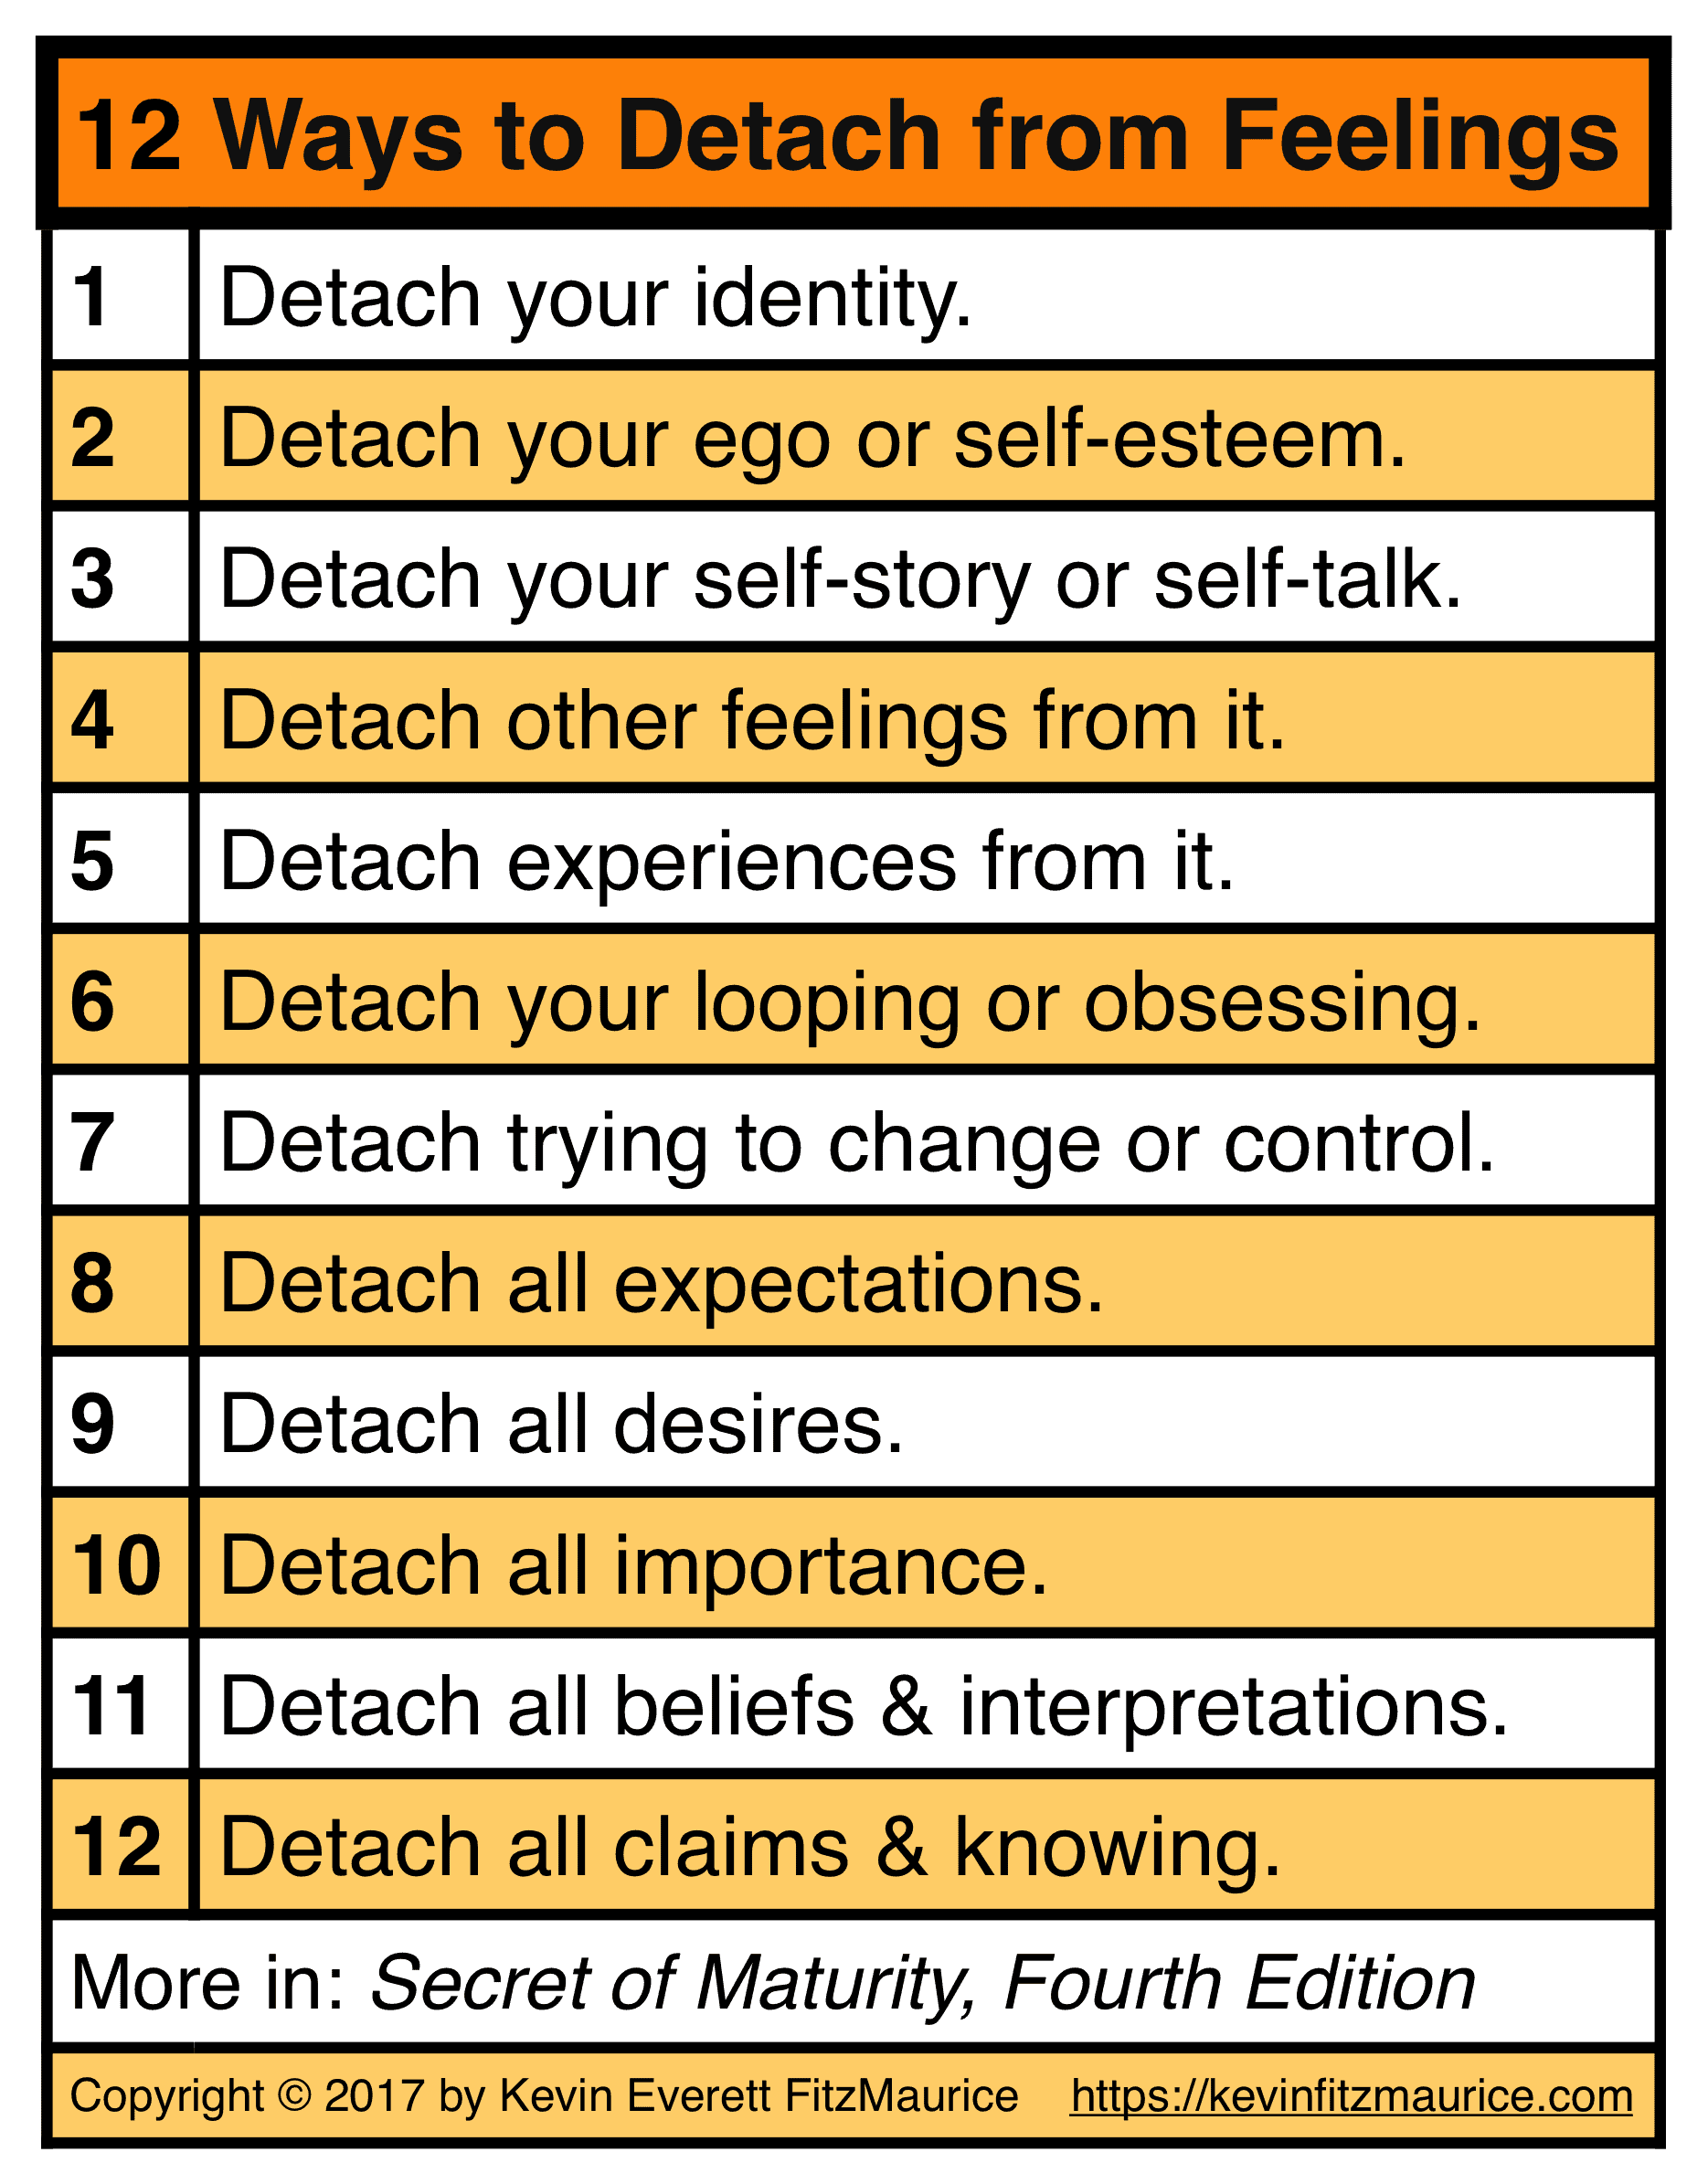 12 Ways to Detach from Feelings